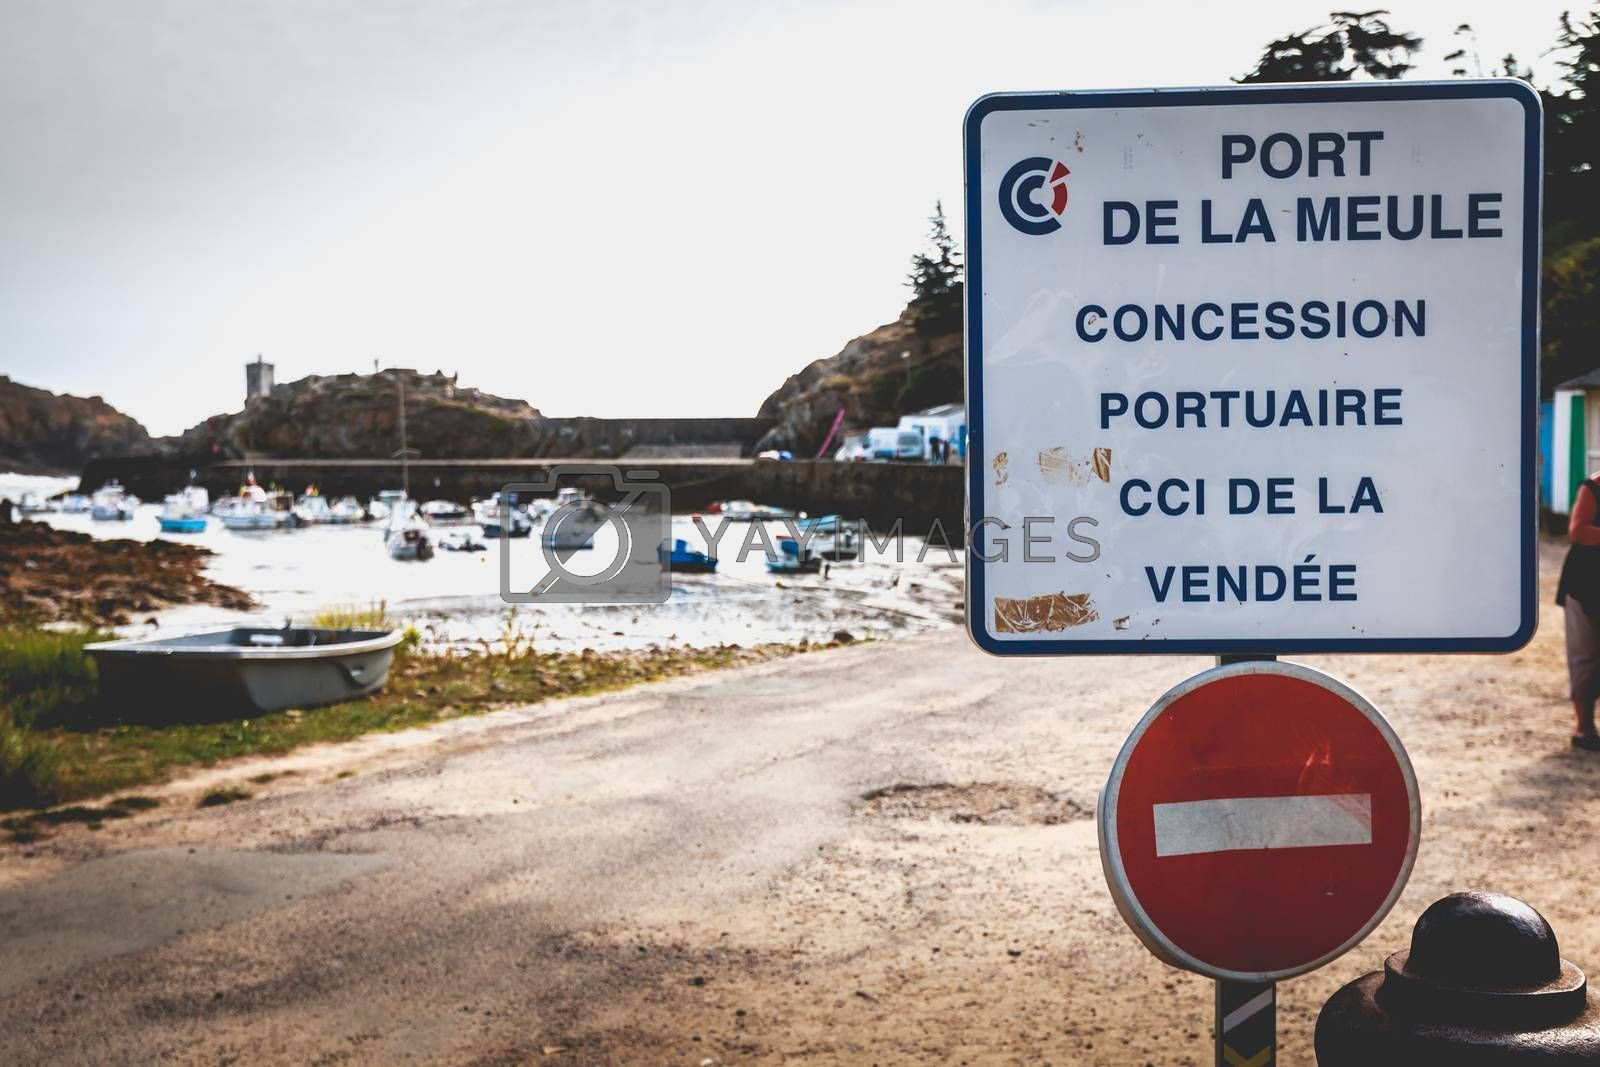 La Meule, France - September 18, 2018: a white sign indicates the entrance of the port of La Meule on the island of Yeu and specifies that it is a port concession of the Vendée CCI